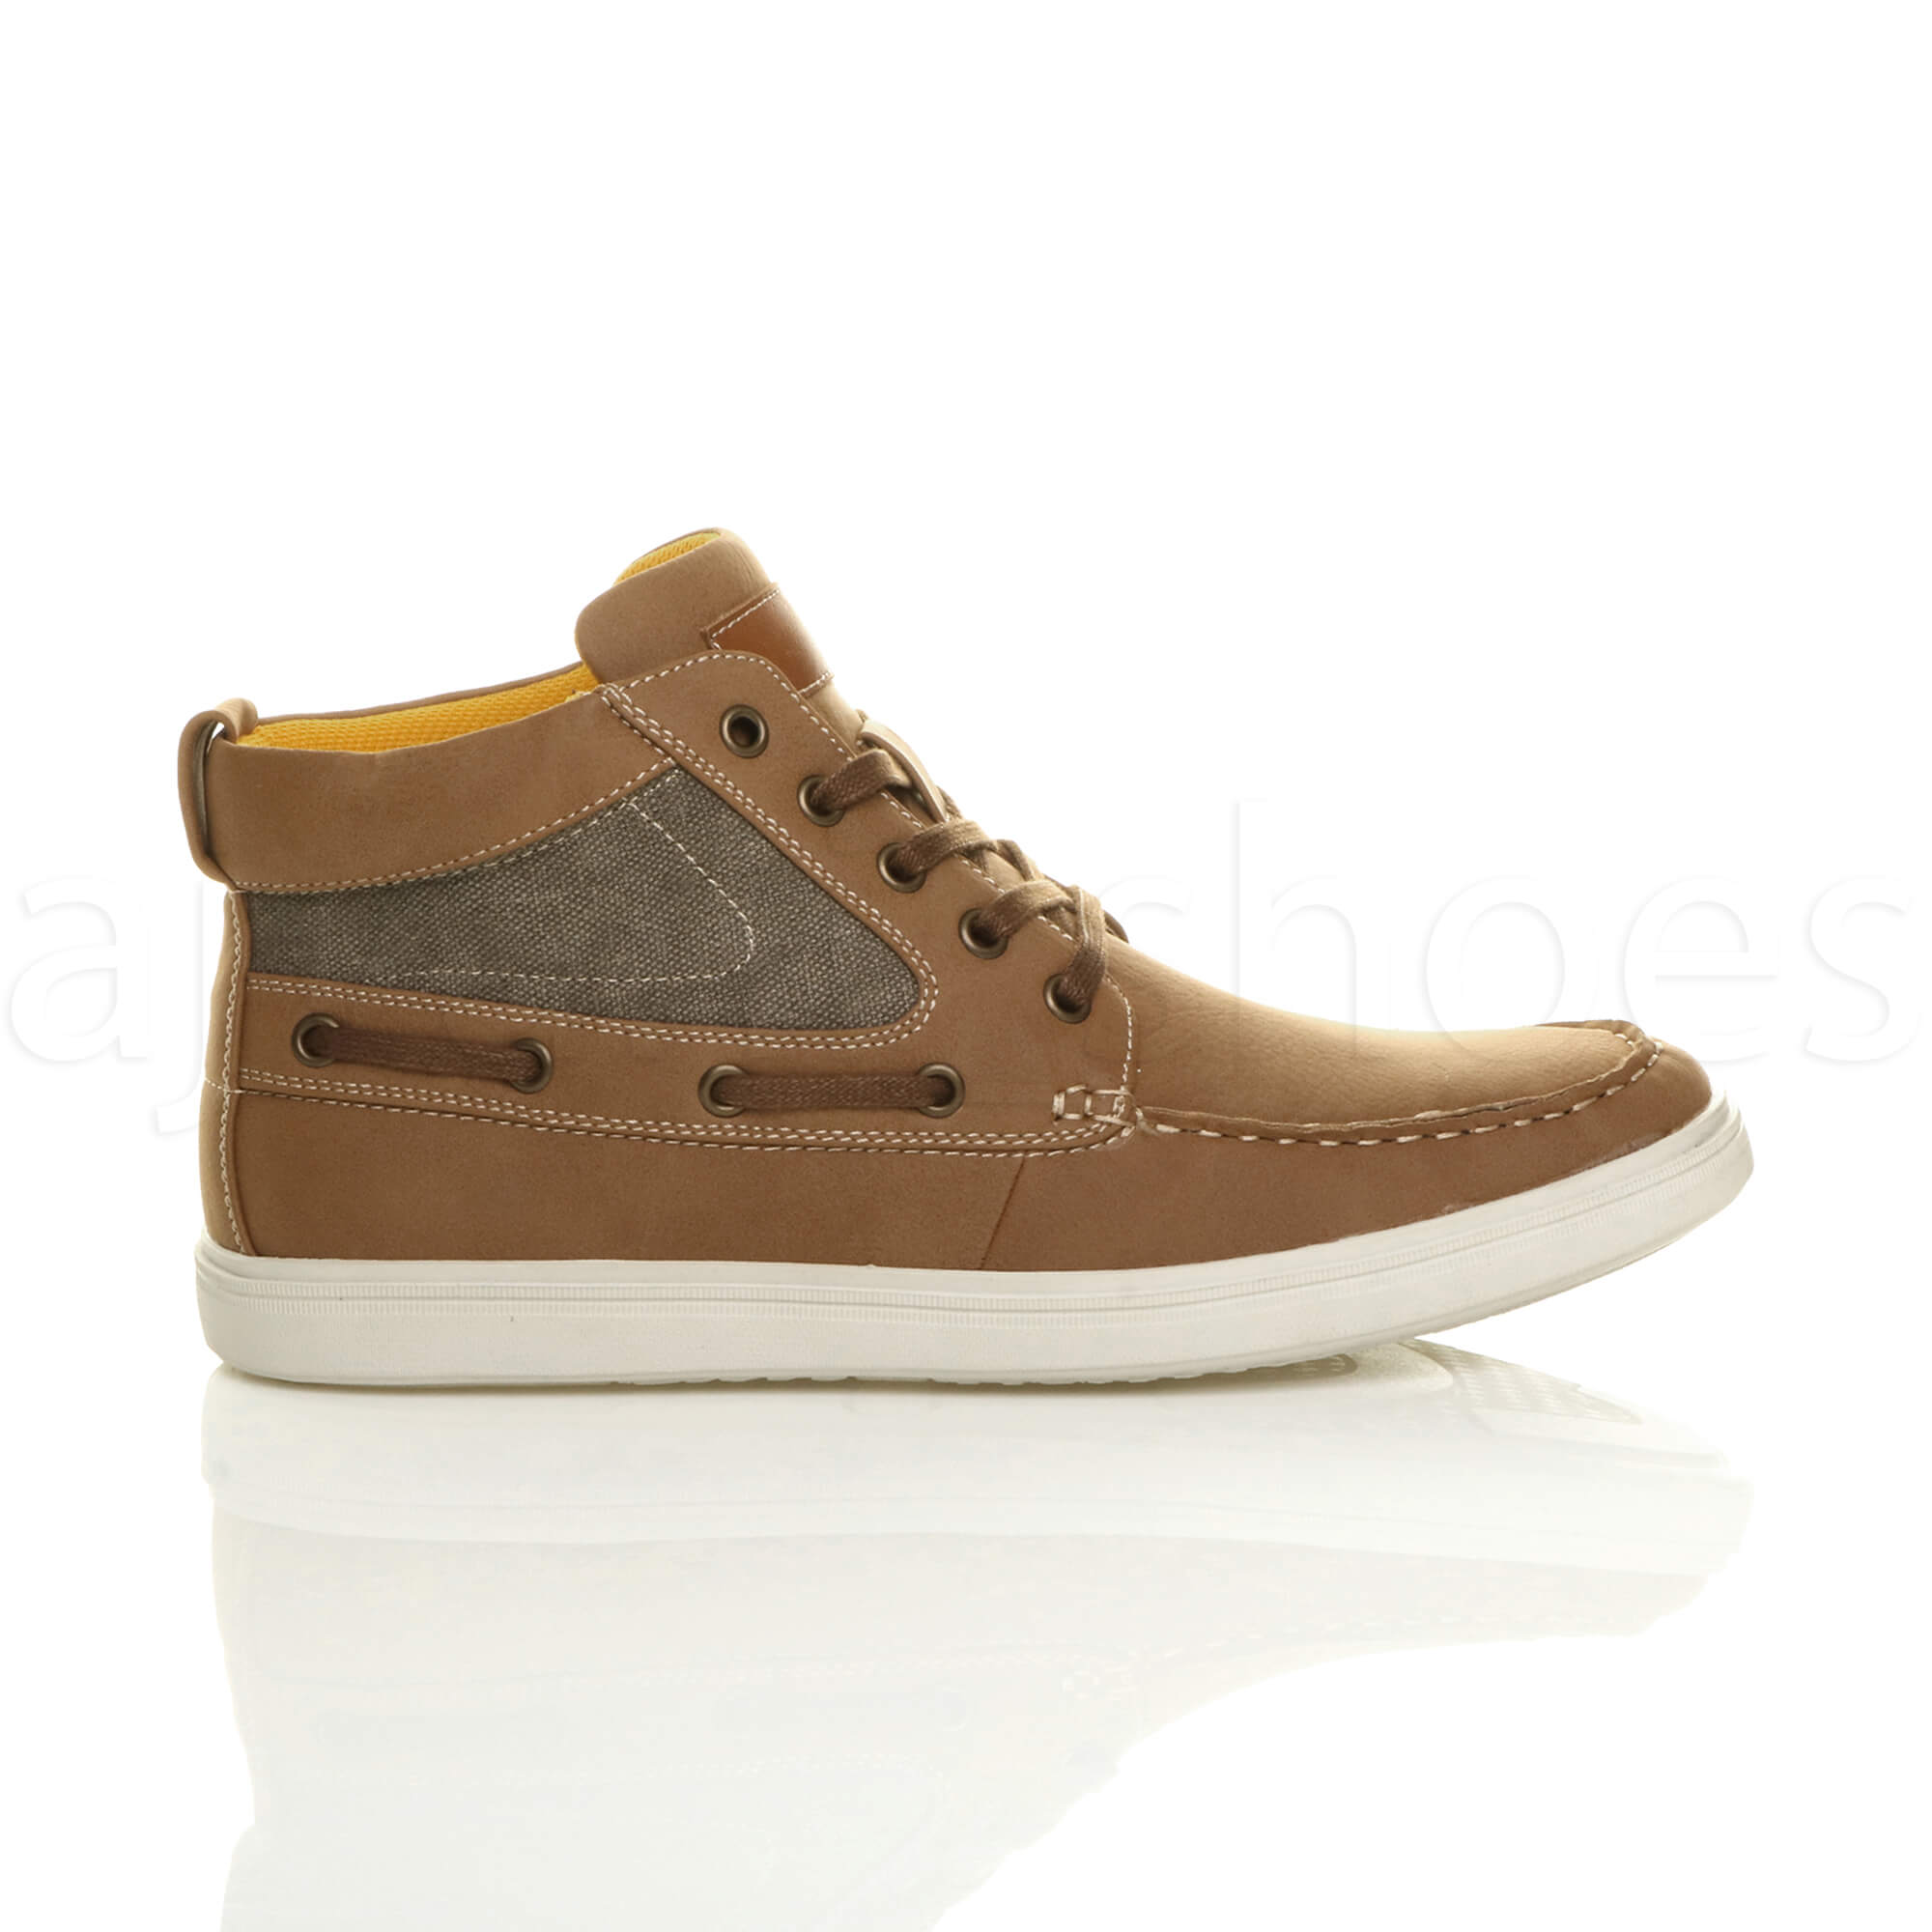 MENS-FLAT-LACE-UP-CASUAL-BOAT-CONTRAST-HI-TOP-TRAINERS-ANKLE-BOOTS-PUMPS-SIZE thumbnail 10